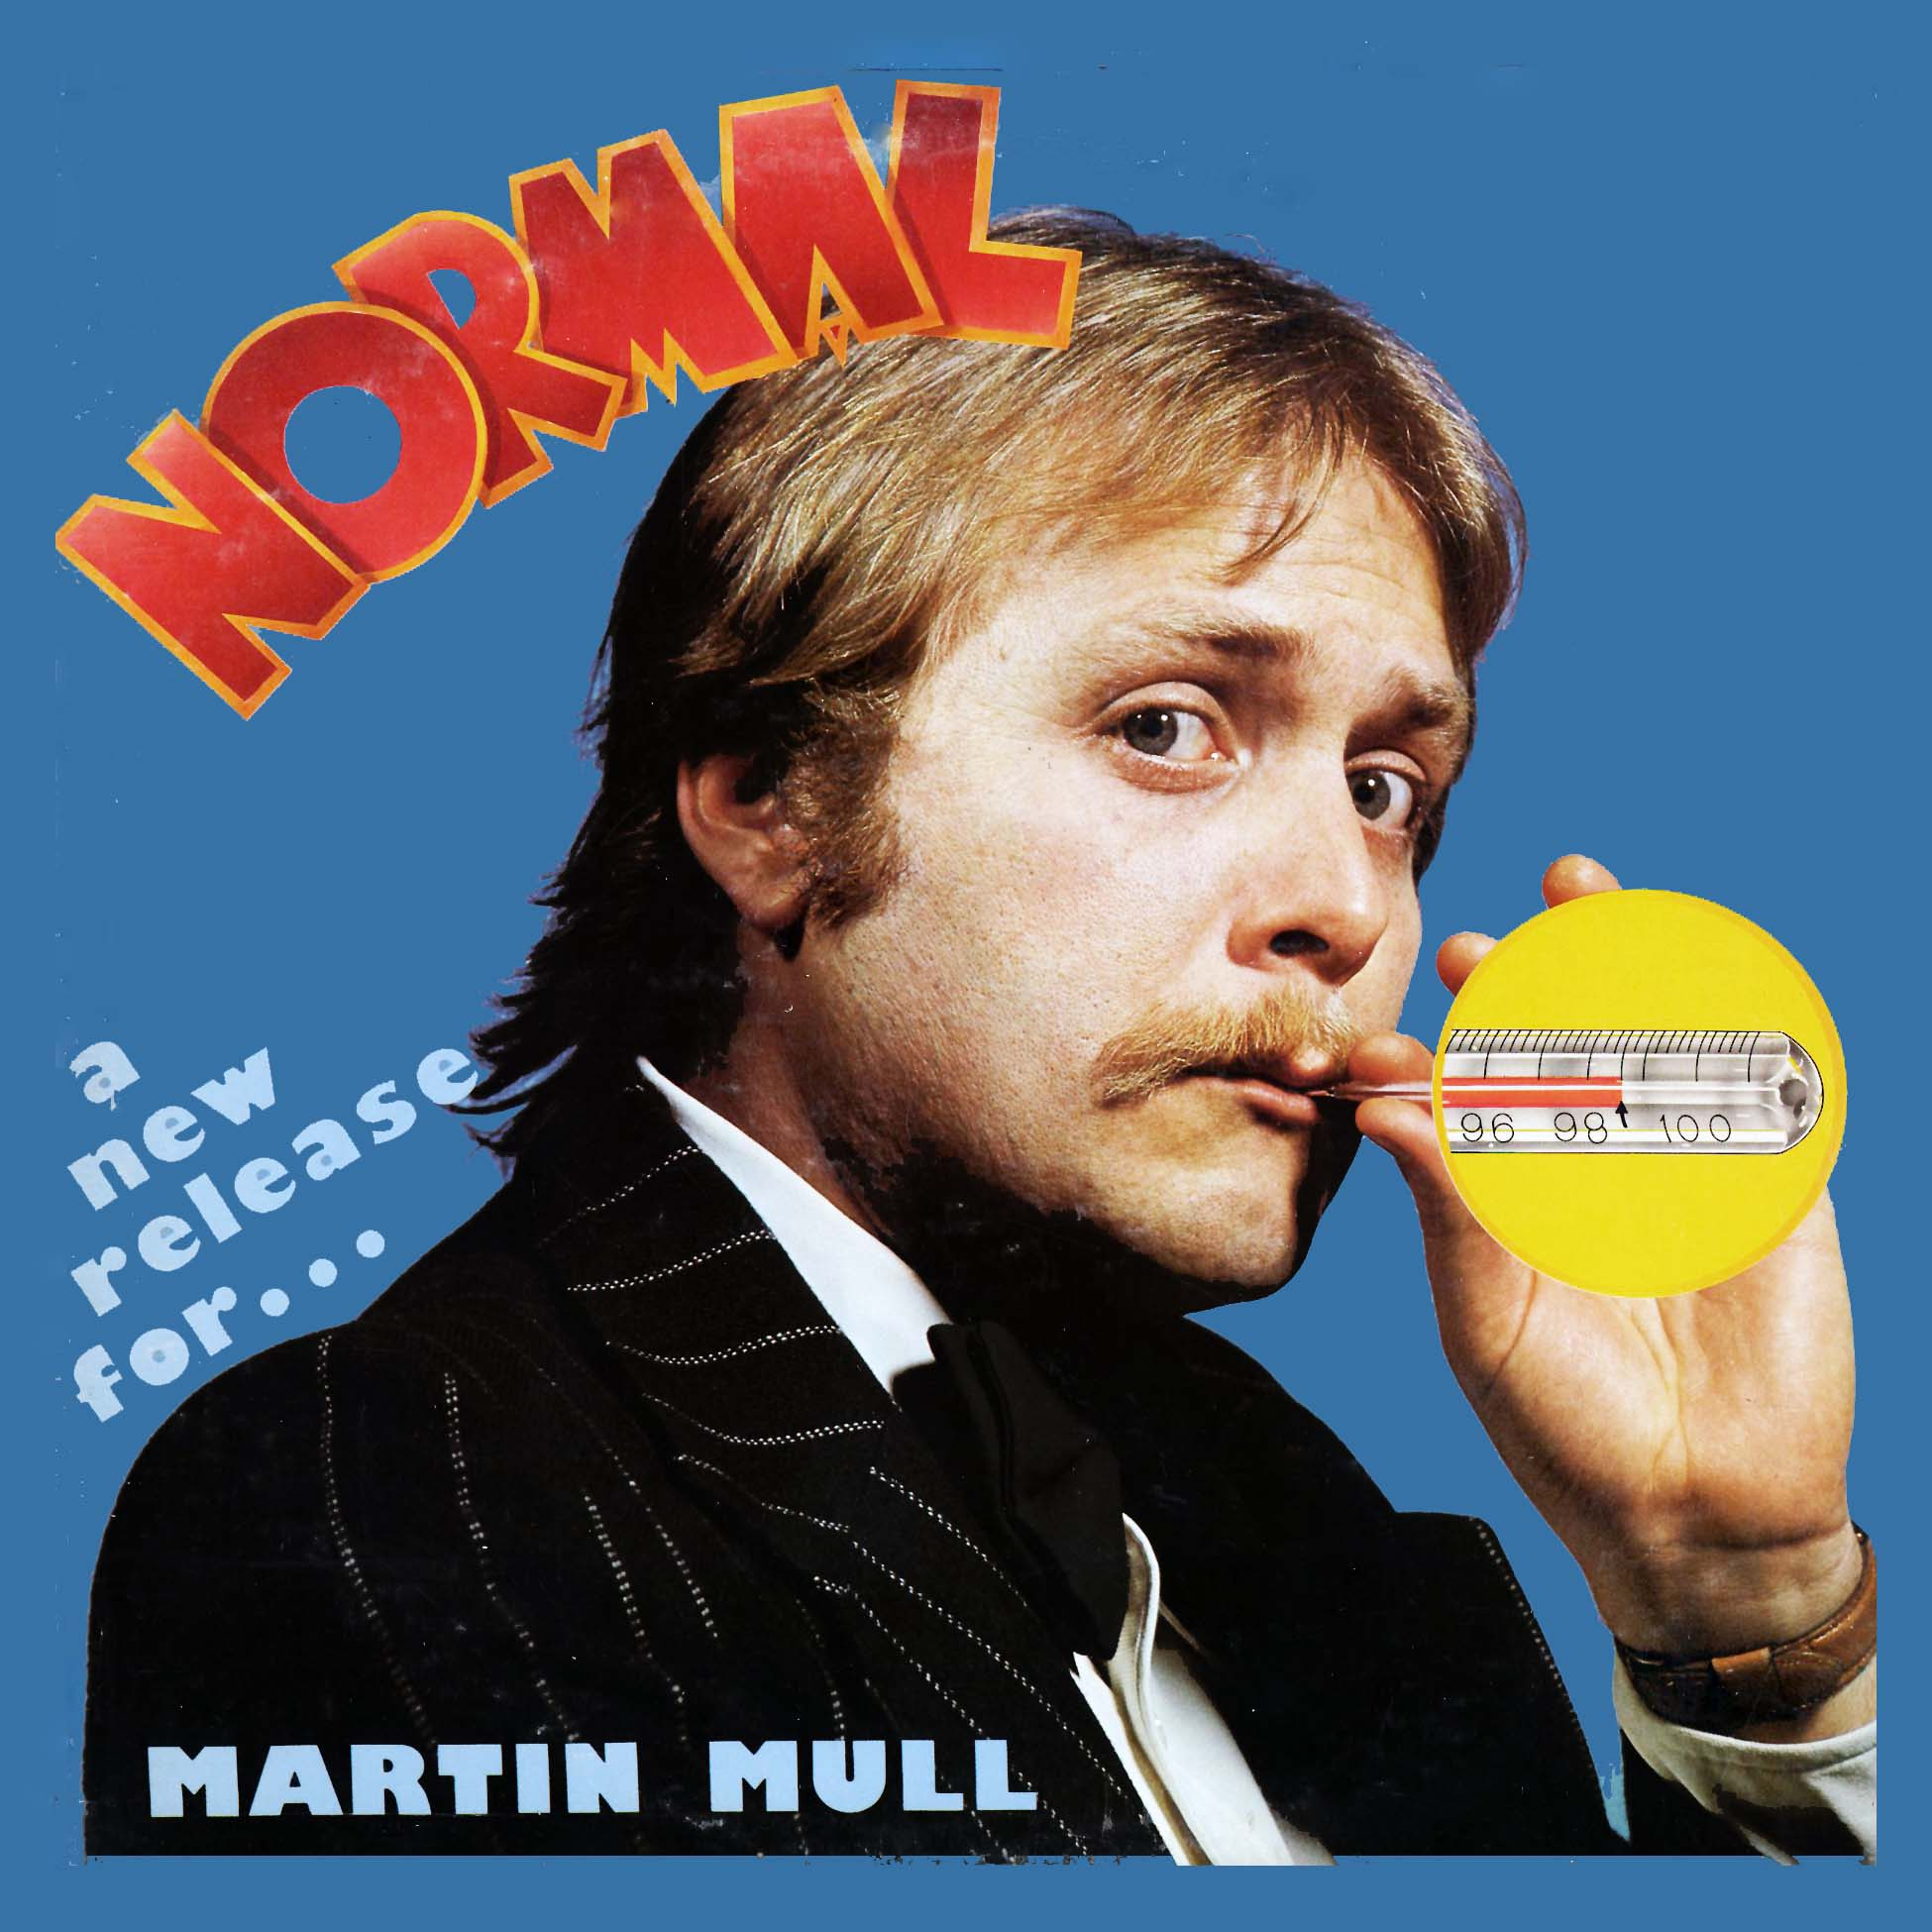 CP0126 - Mull, Martin - Normal on CD